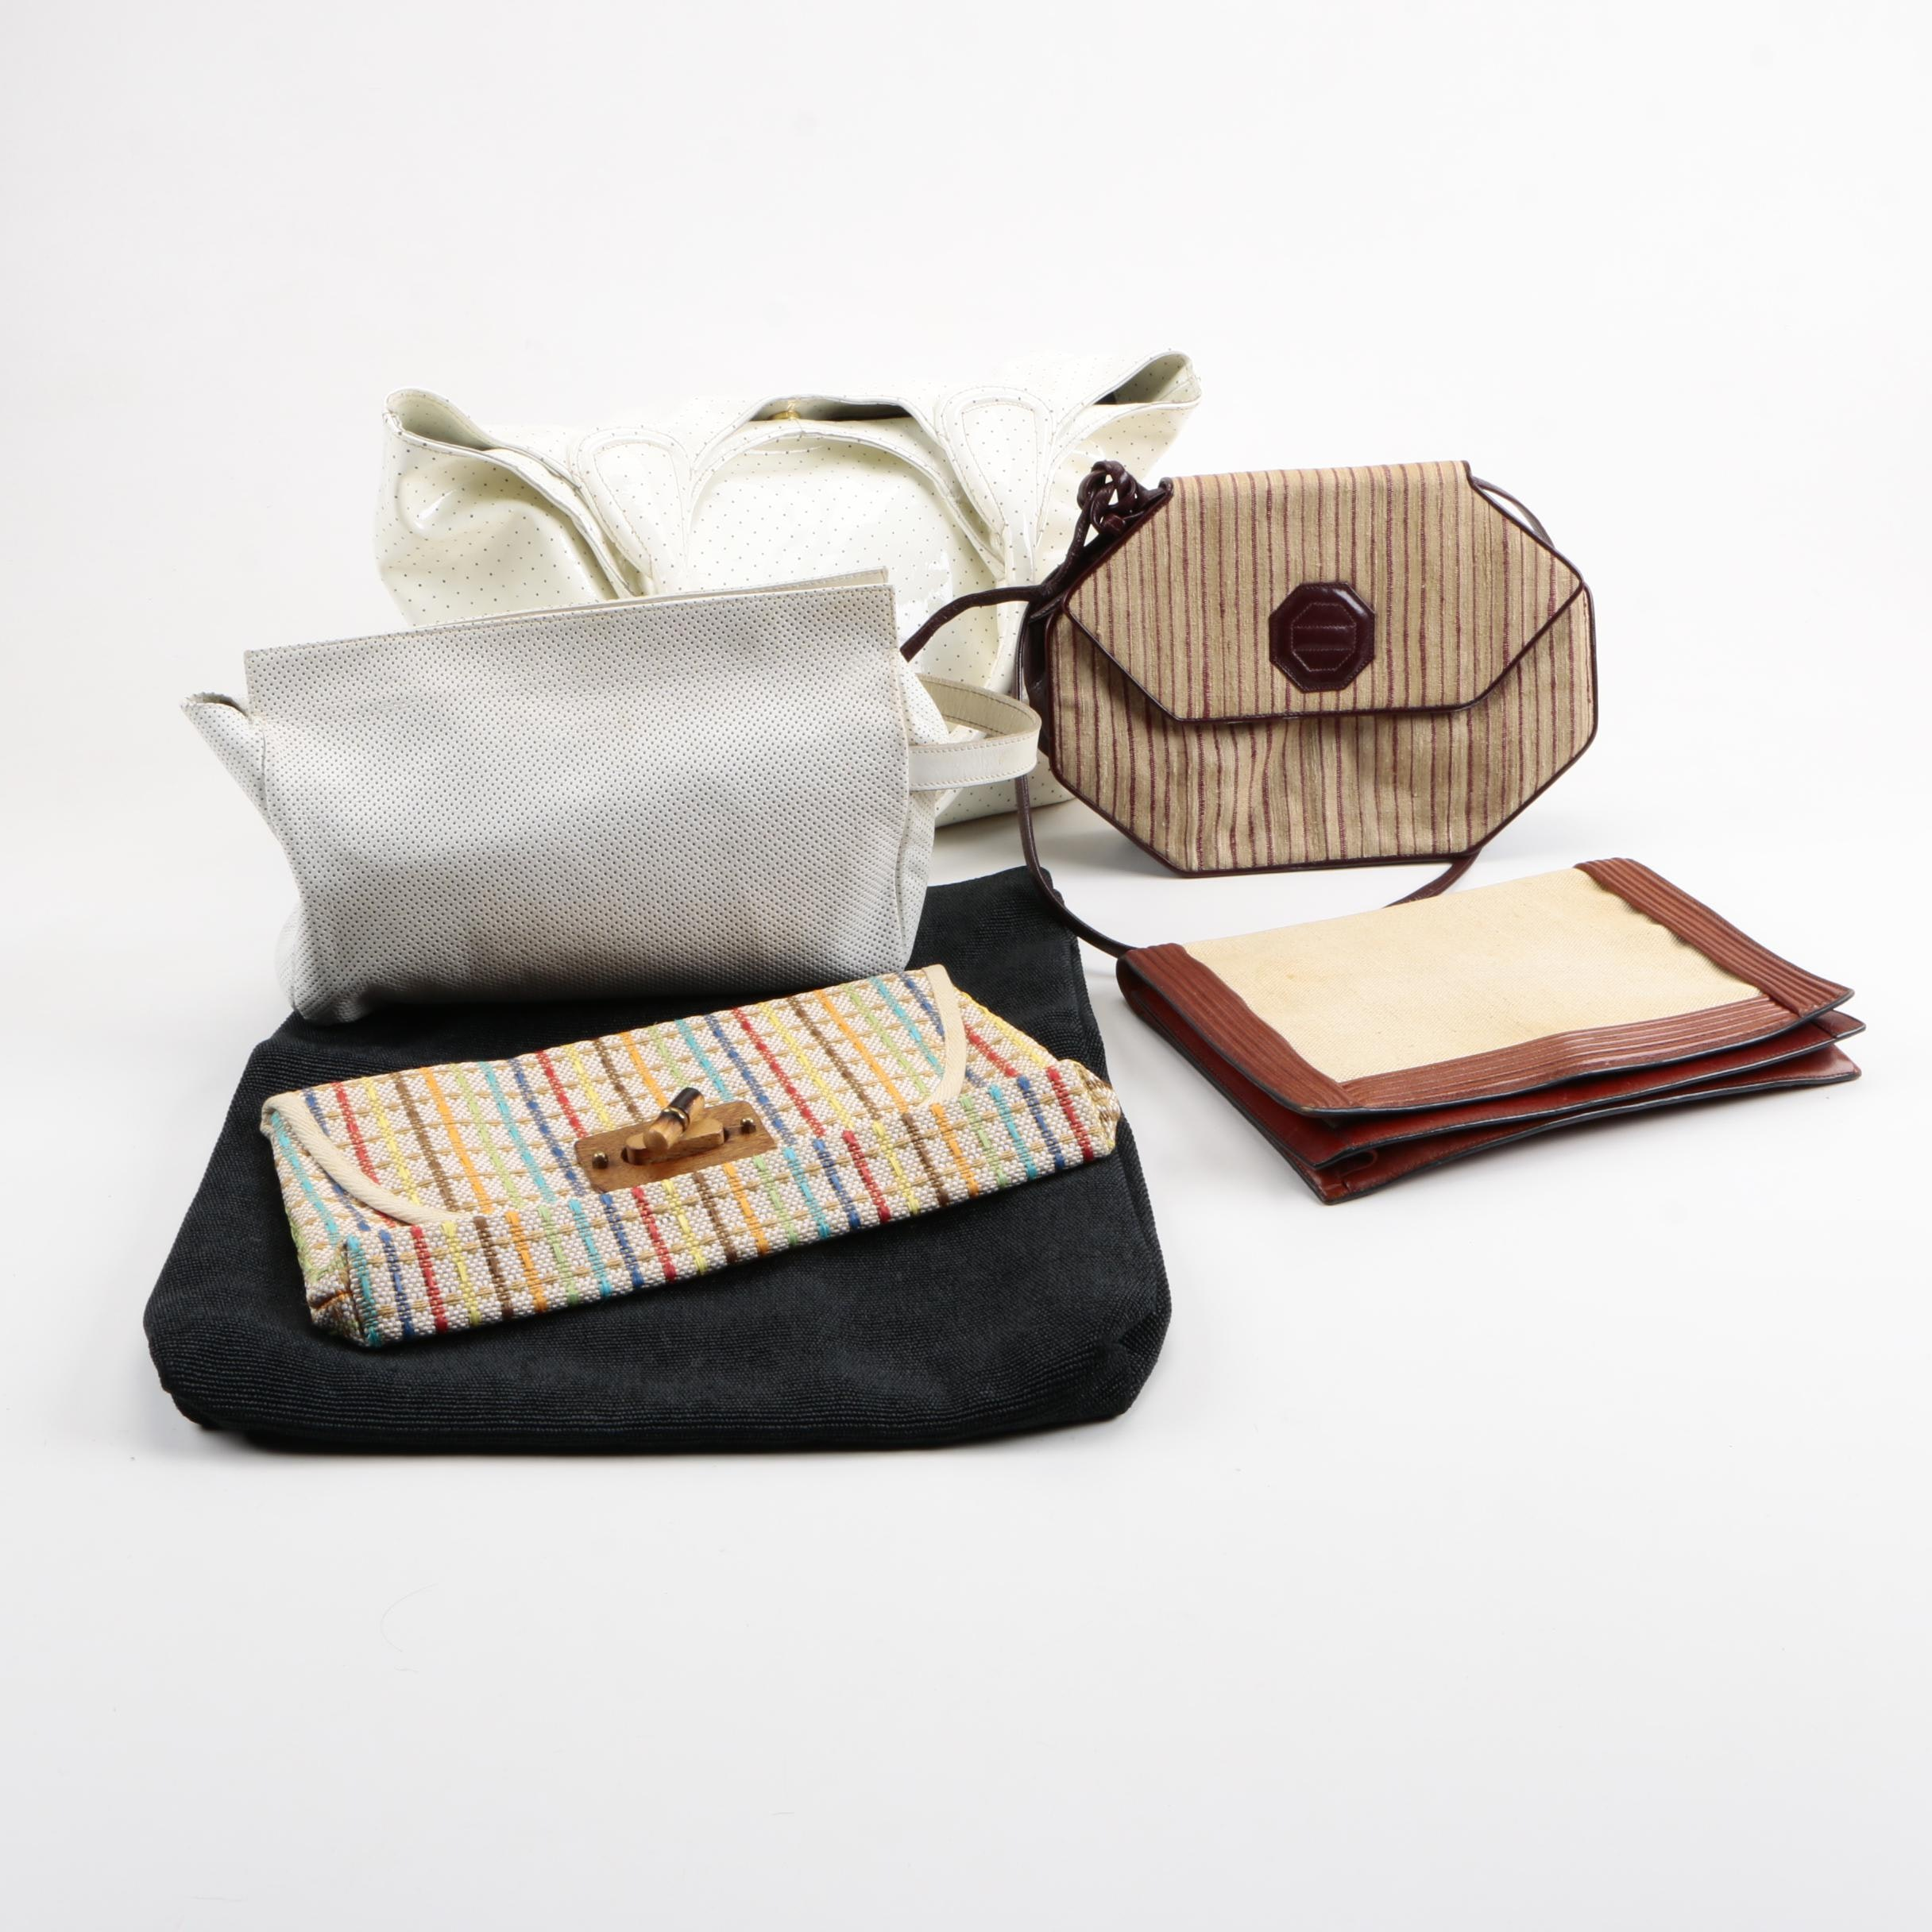 Collection of Handbags and Clutches Including Barneys New York and DKNY